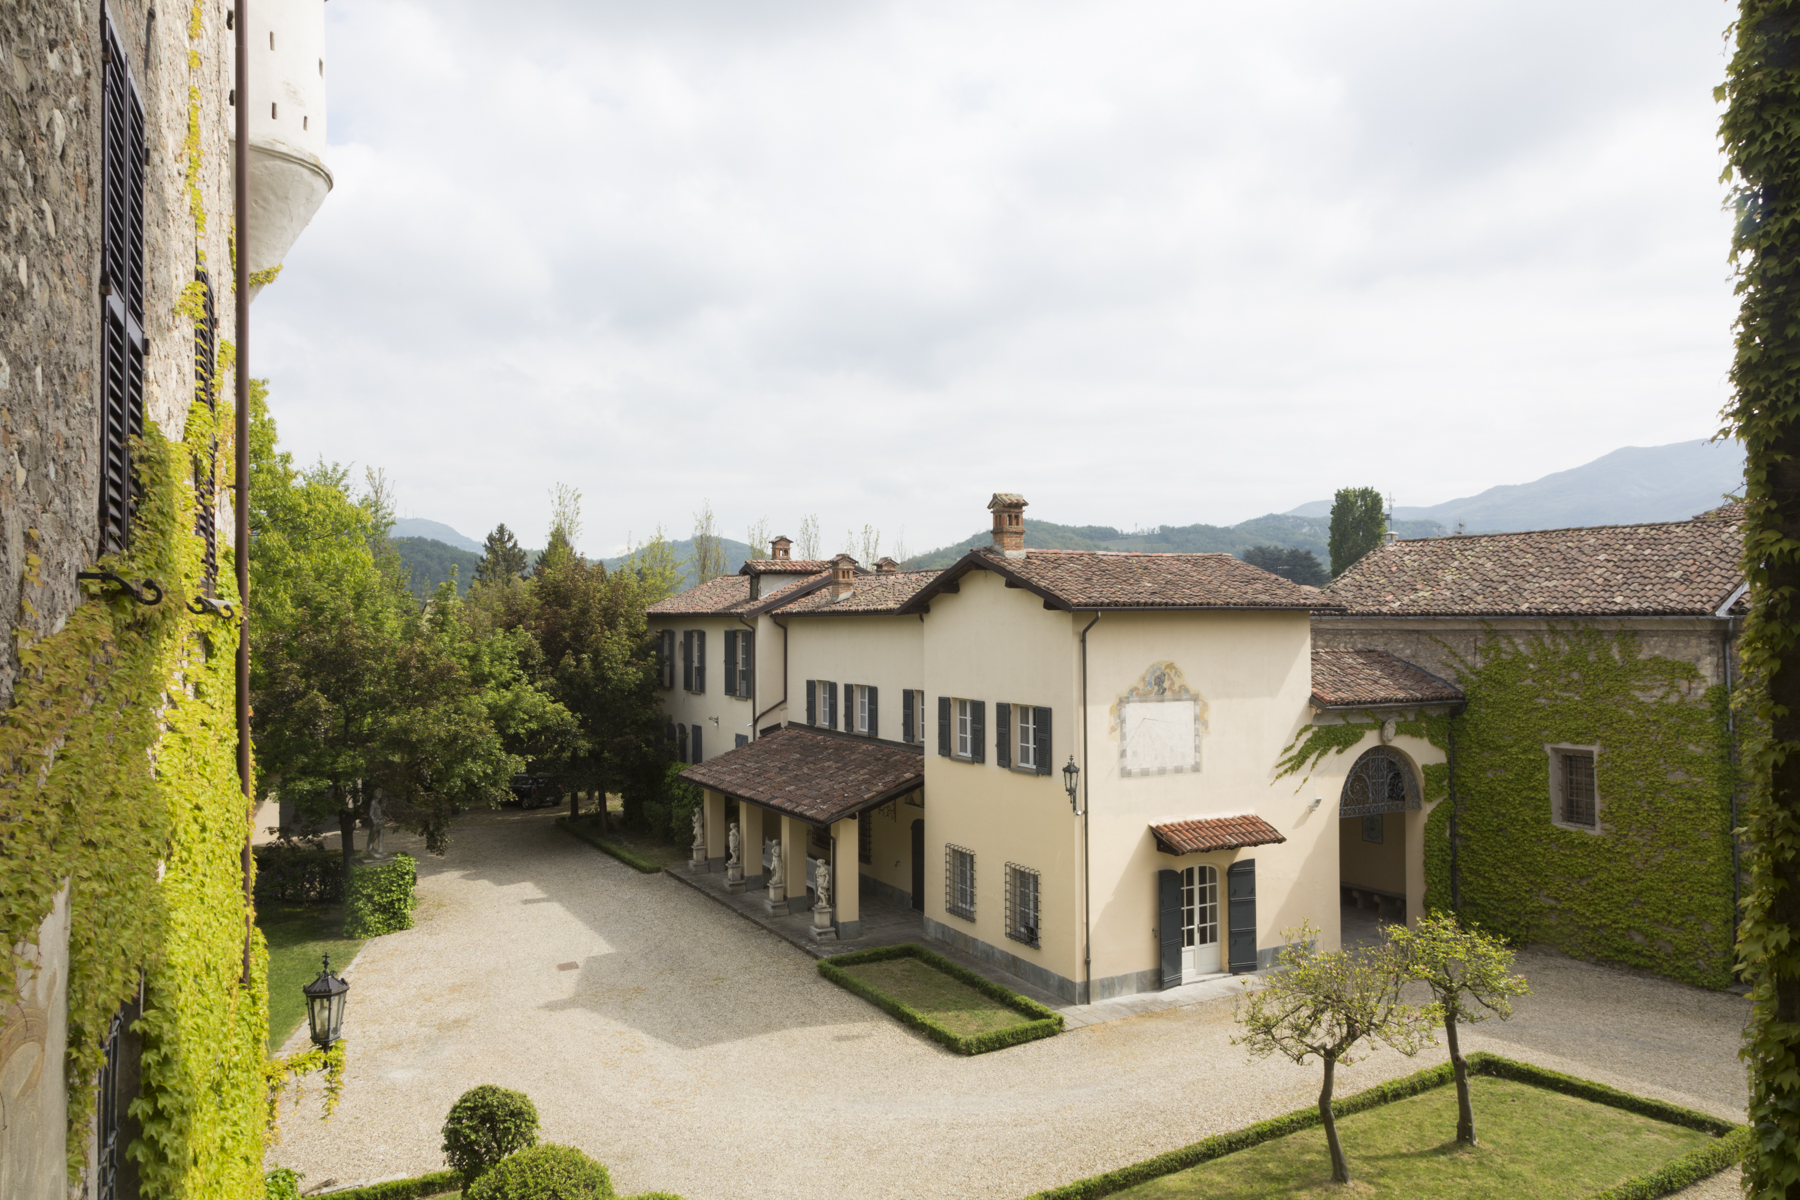 Additional photo for property listing at Timeless medieval castle surrounded by green Borghetto Borbera, Alessandria Italy